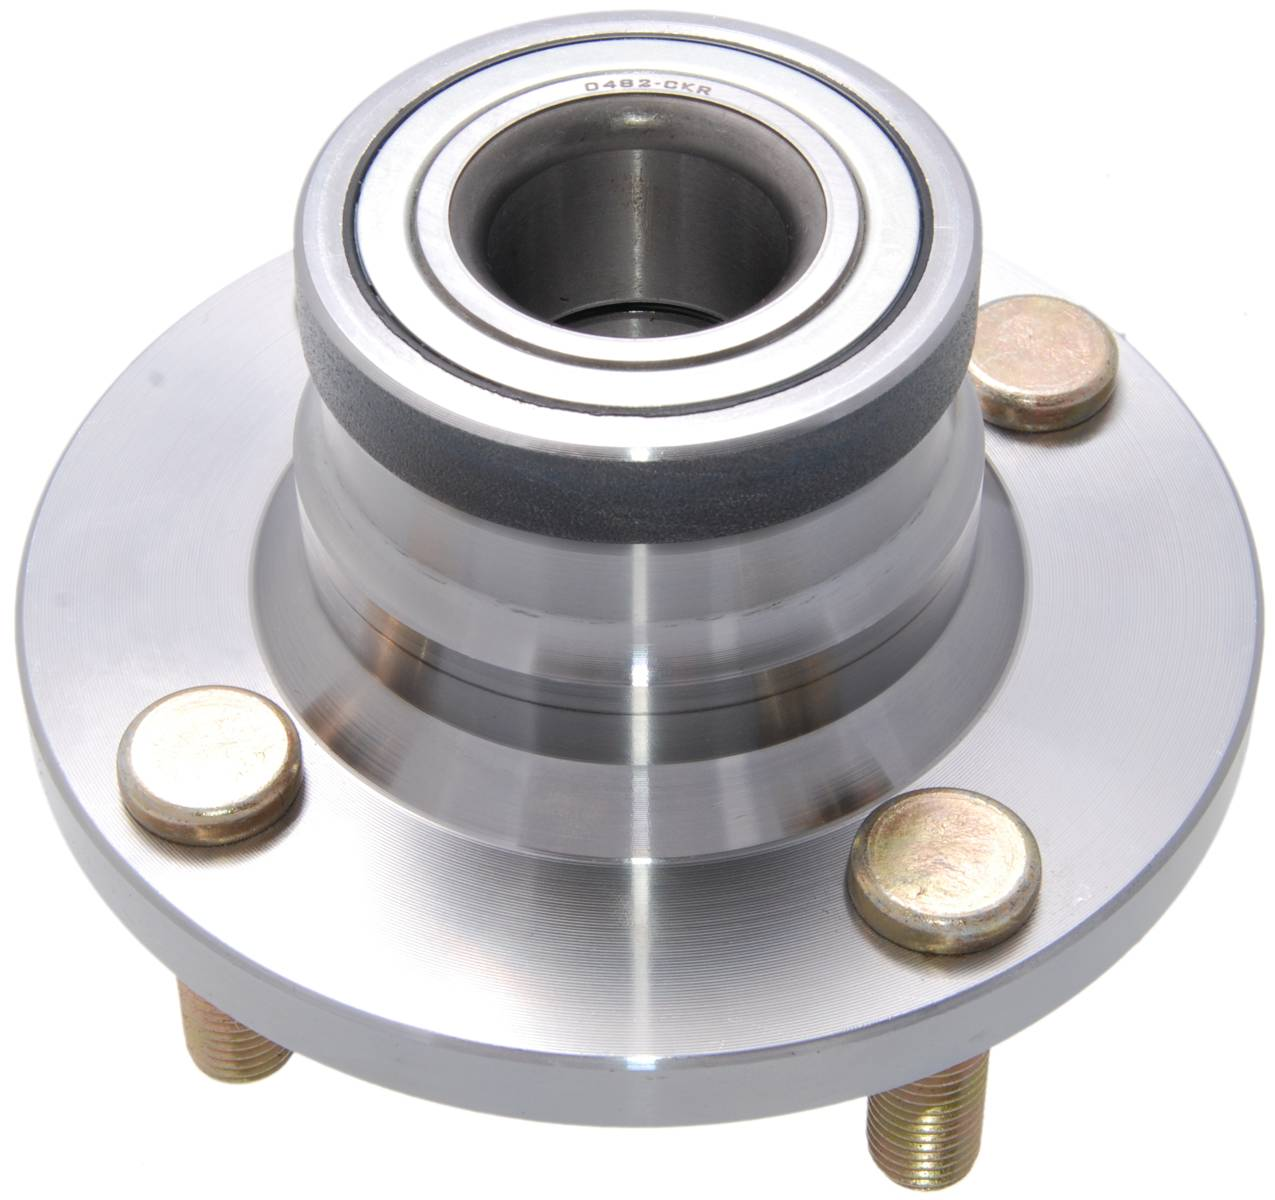 Febest 0482-CKR REAR WHEEL HUB, CHRYSLER IMPORT 1984-1996,  OEM MB844919